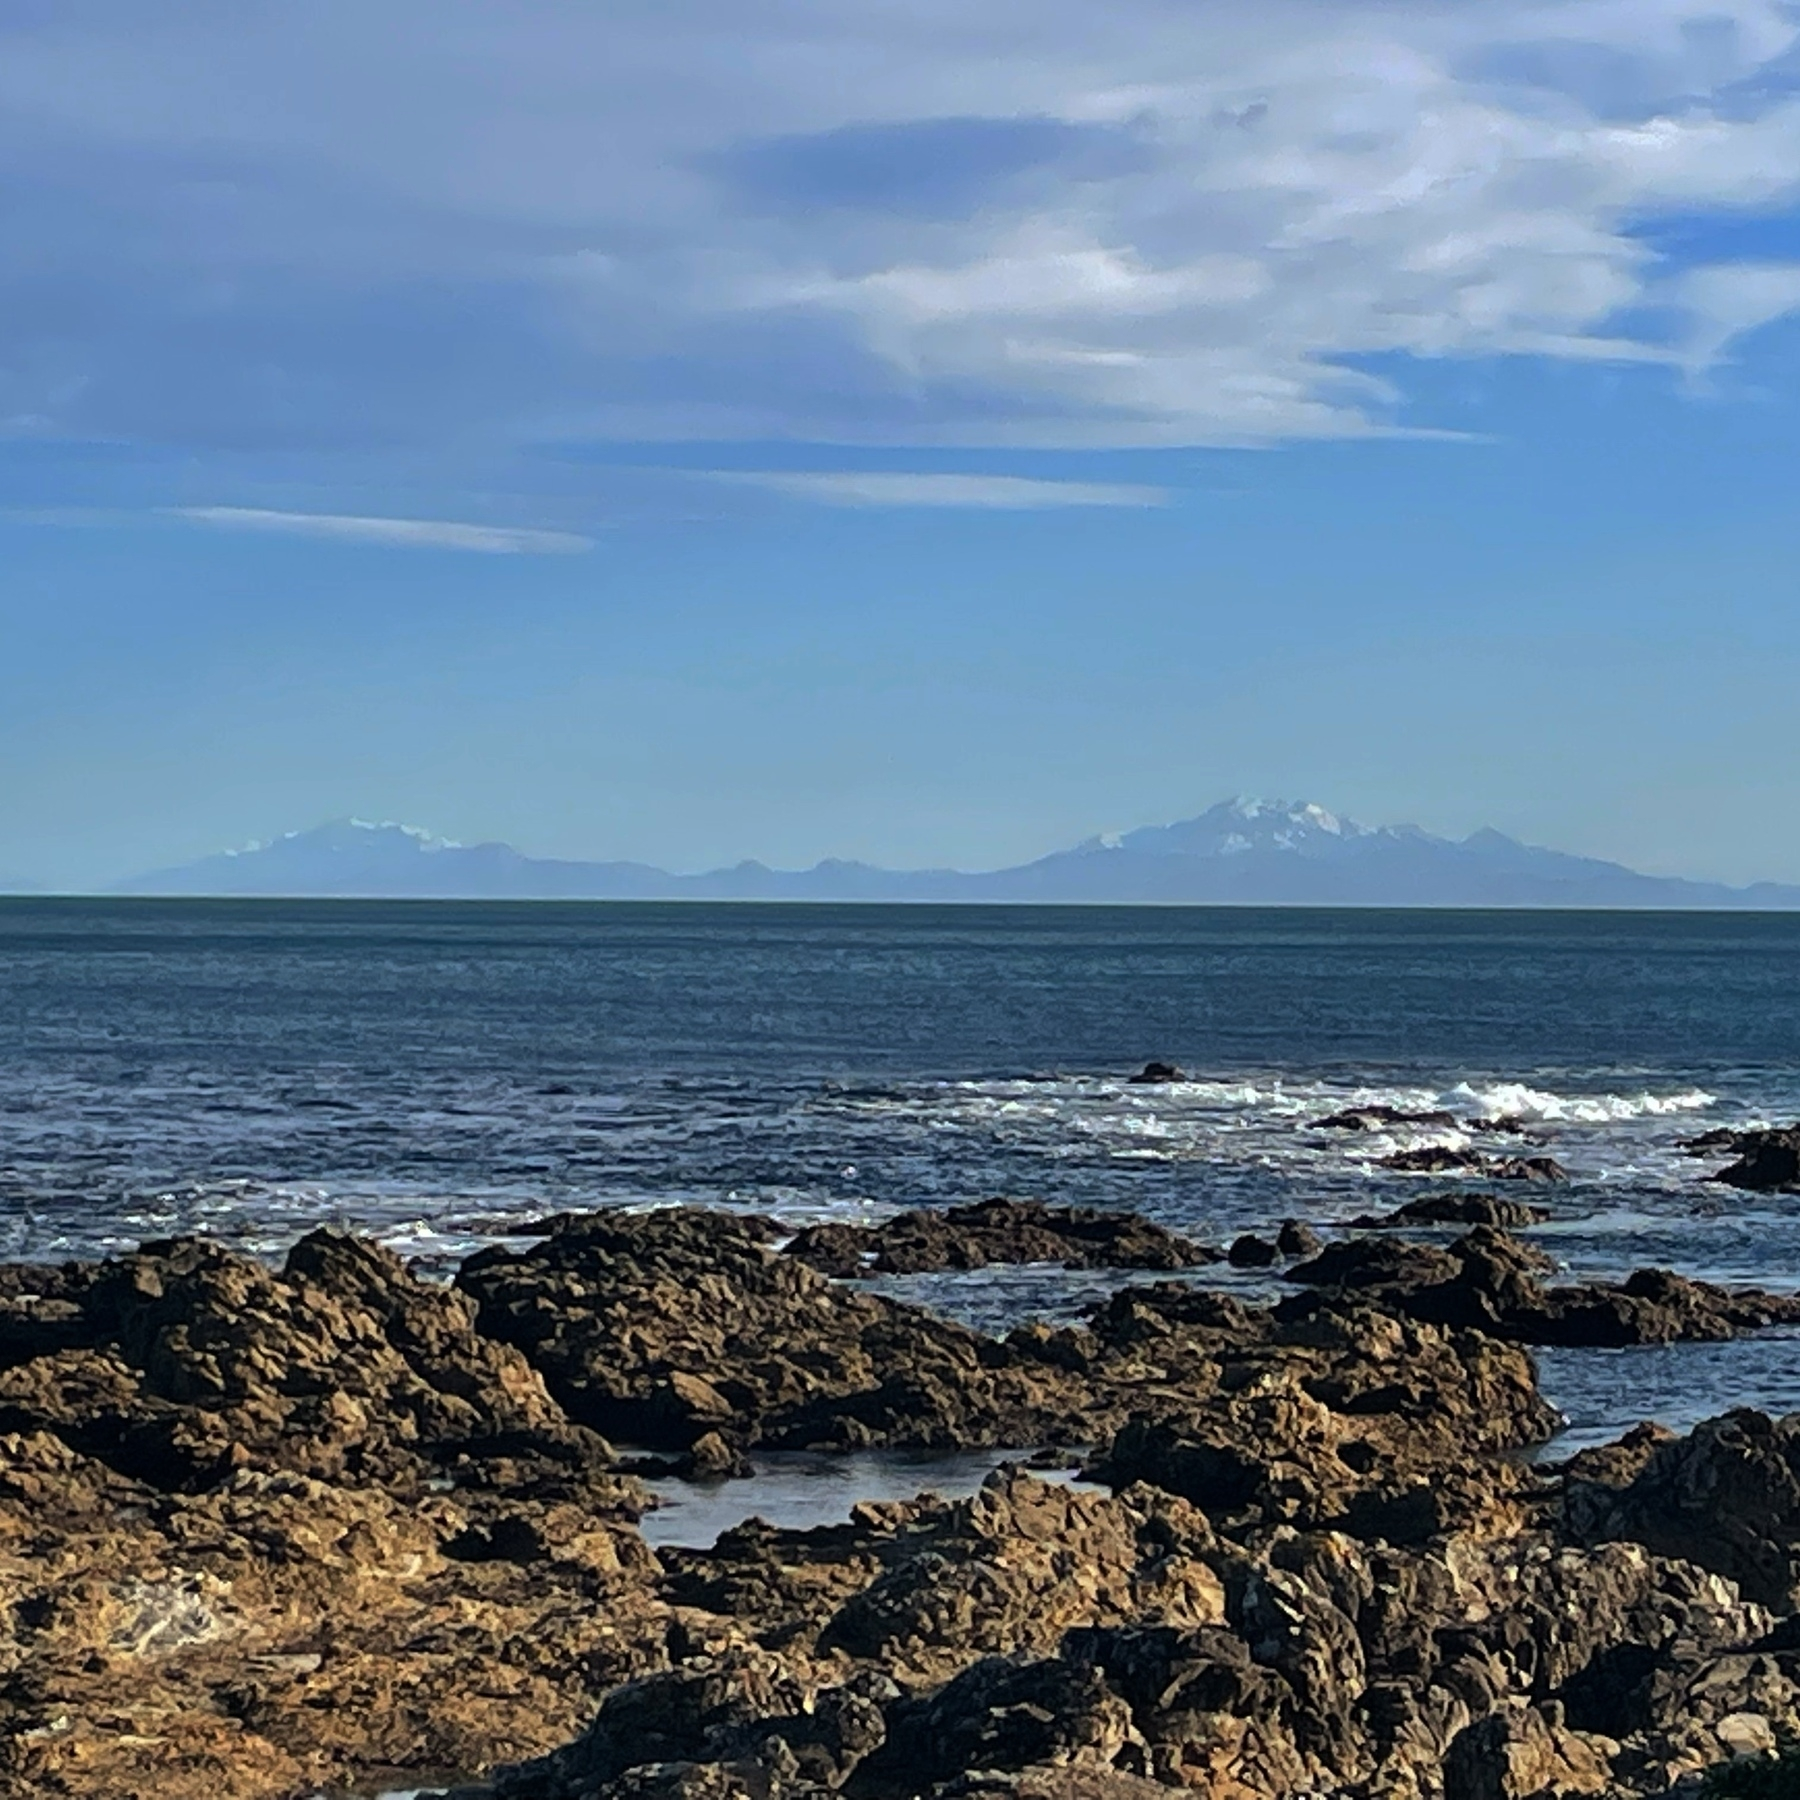 The mountains of the Kaikoura ranges, capped in snow, as seen from the southern Wellington coast